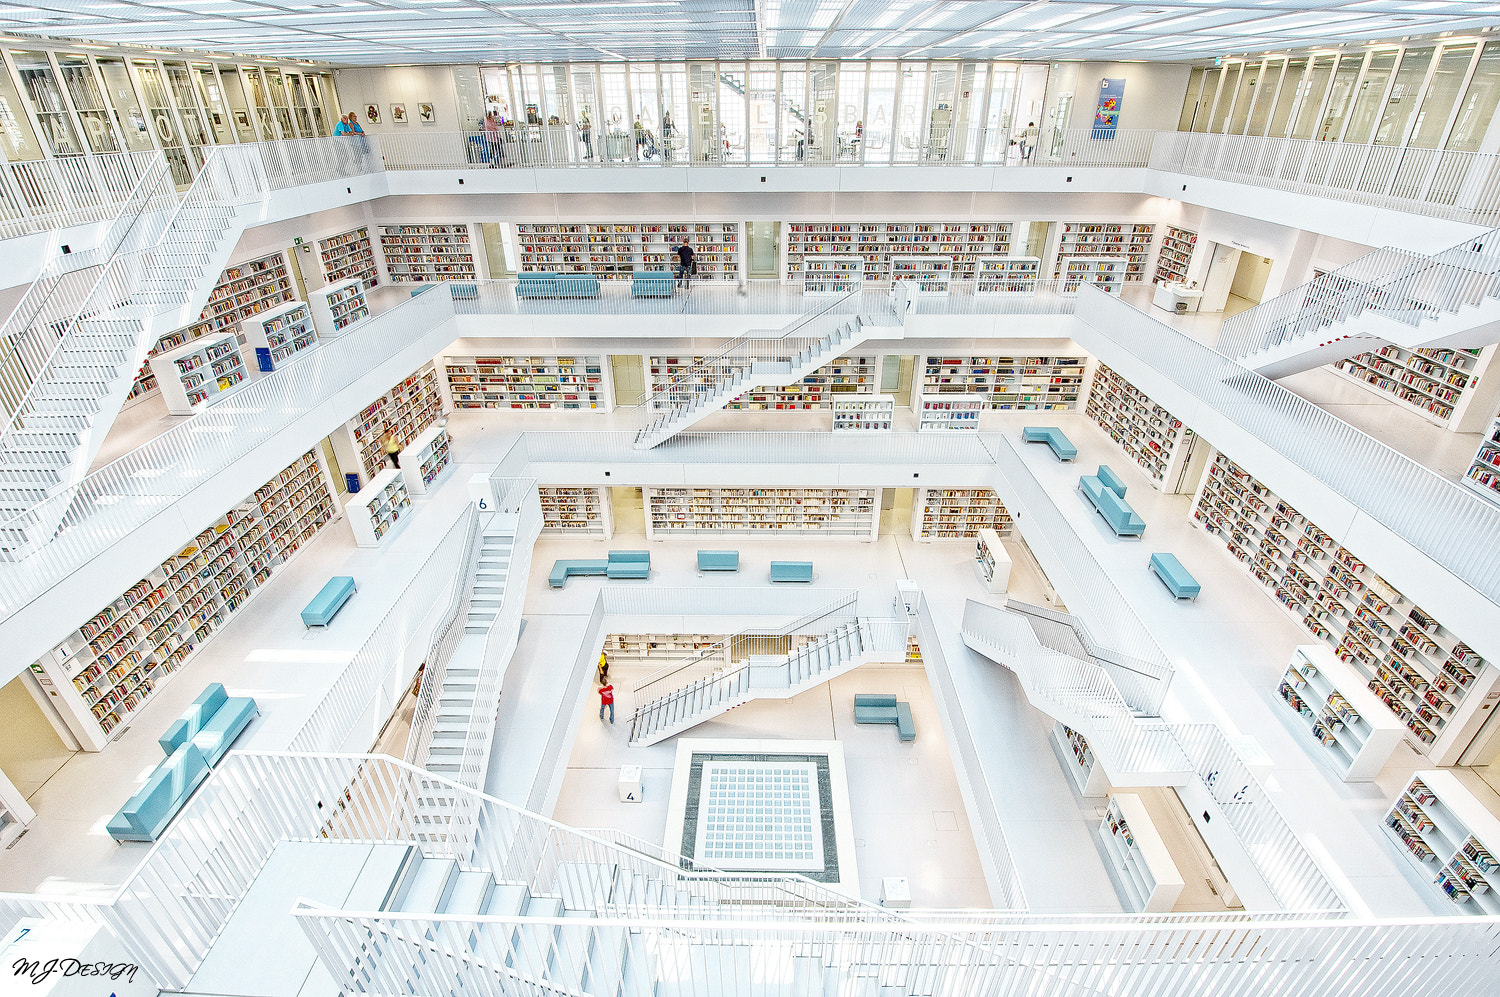 Photograph ** Stuttgart Library Inside ** by MJ Design on 500px